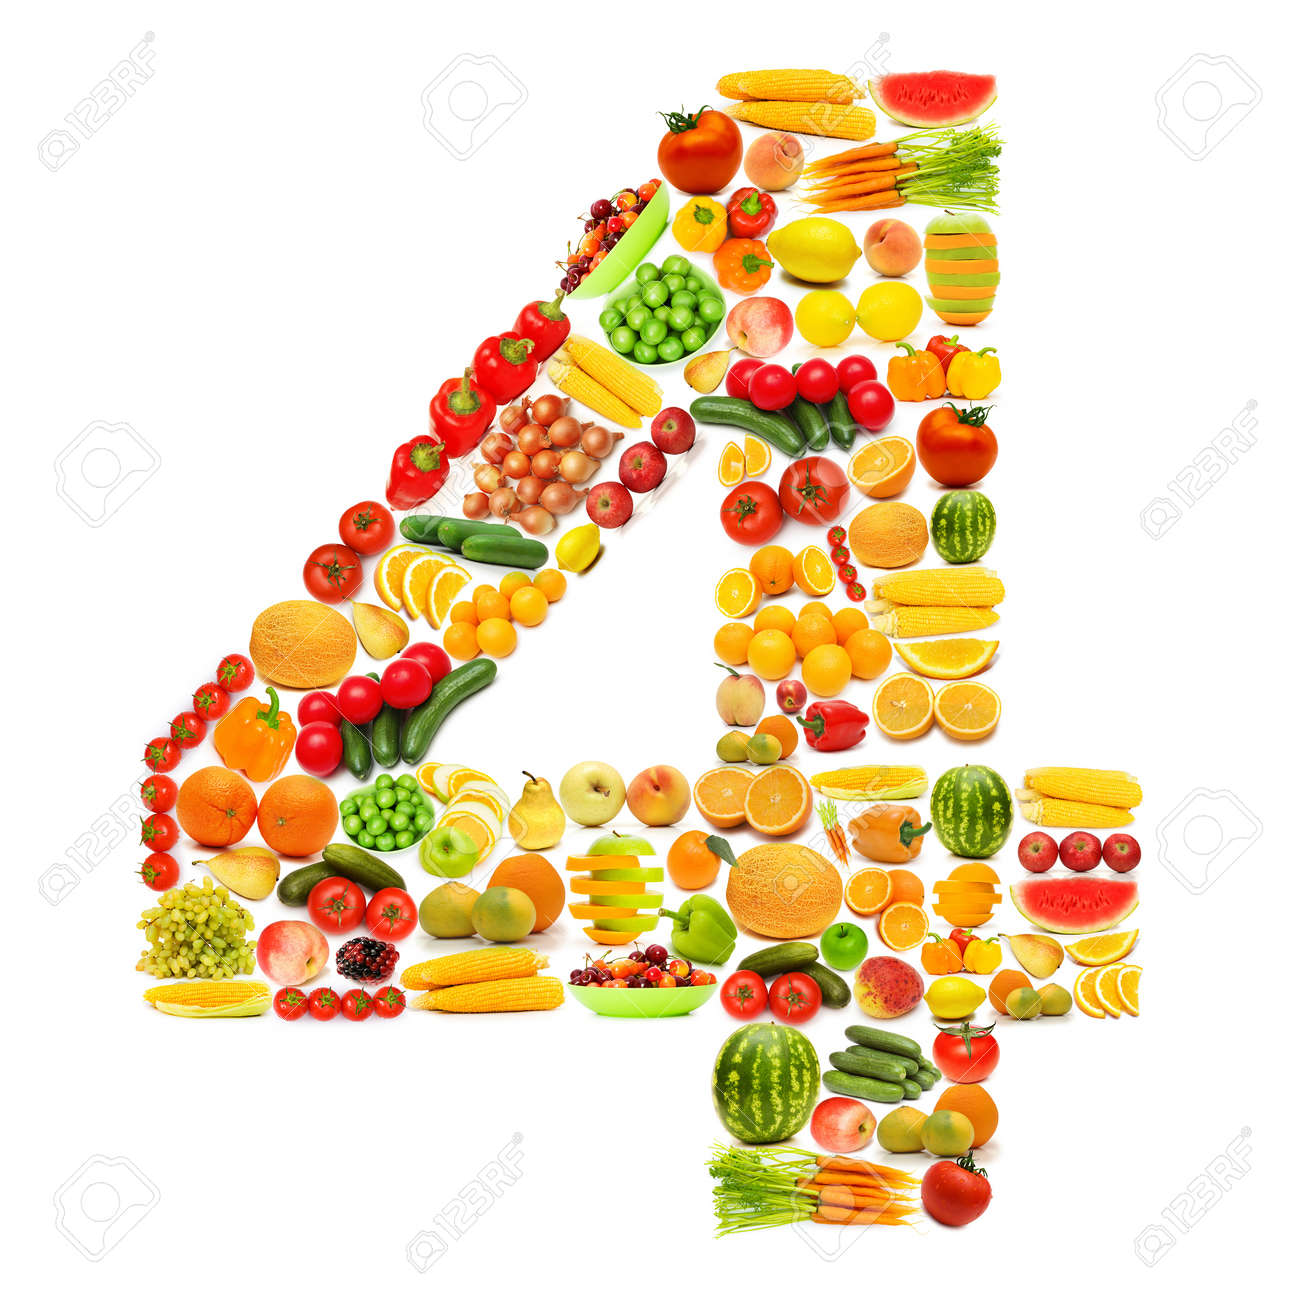 Alphabet made of many fruits and vegetables Stock Photo - 12226152